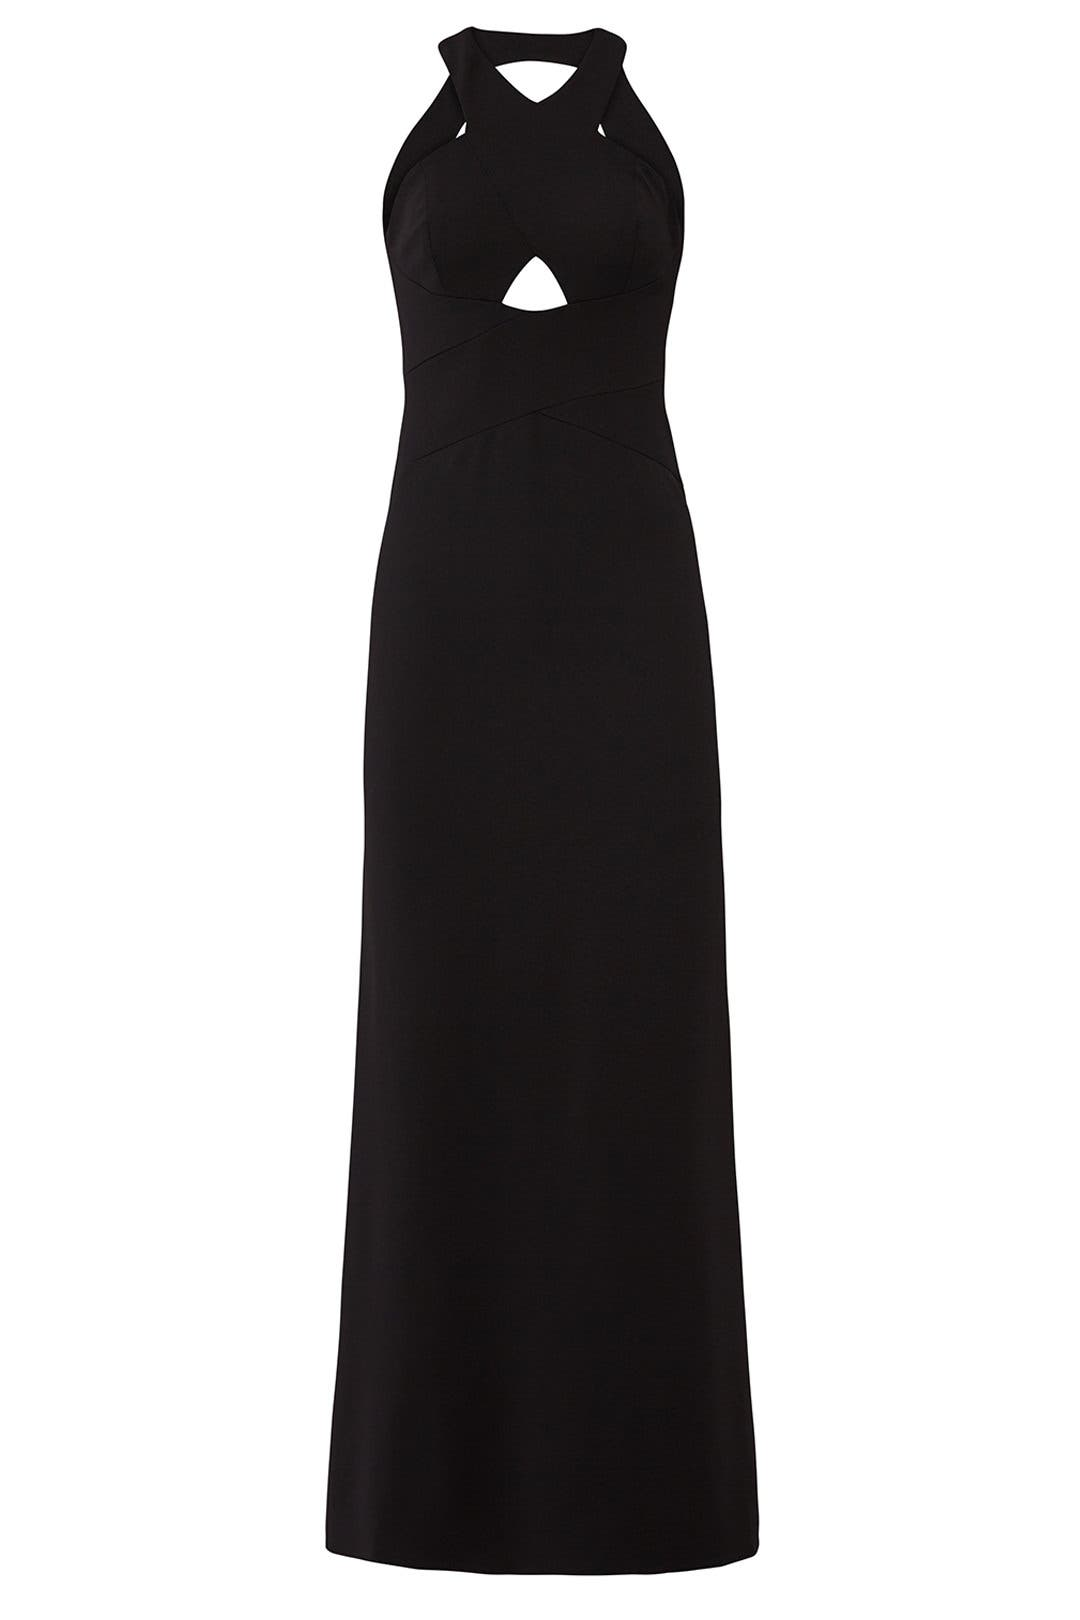 Cutout Halter Neck Gown by Aidan Mattox for $40 - $60 | Rent the Runway